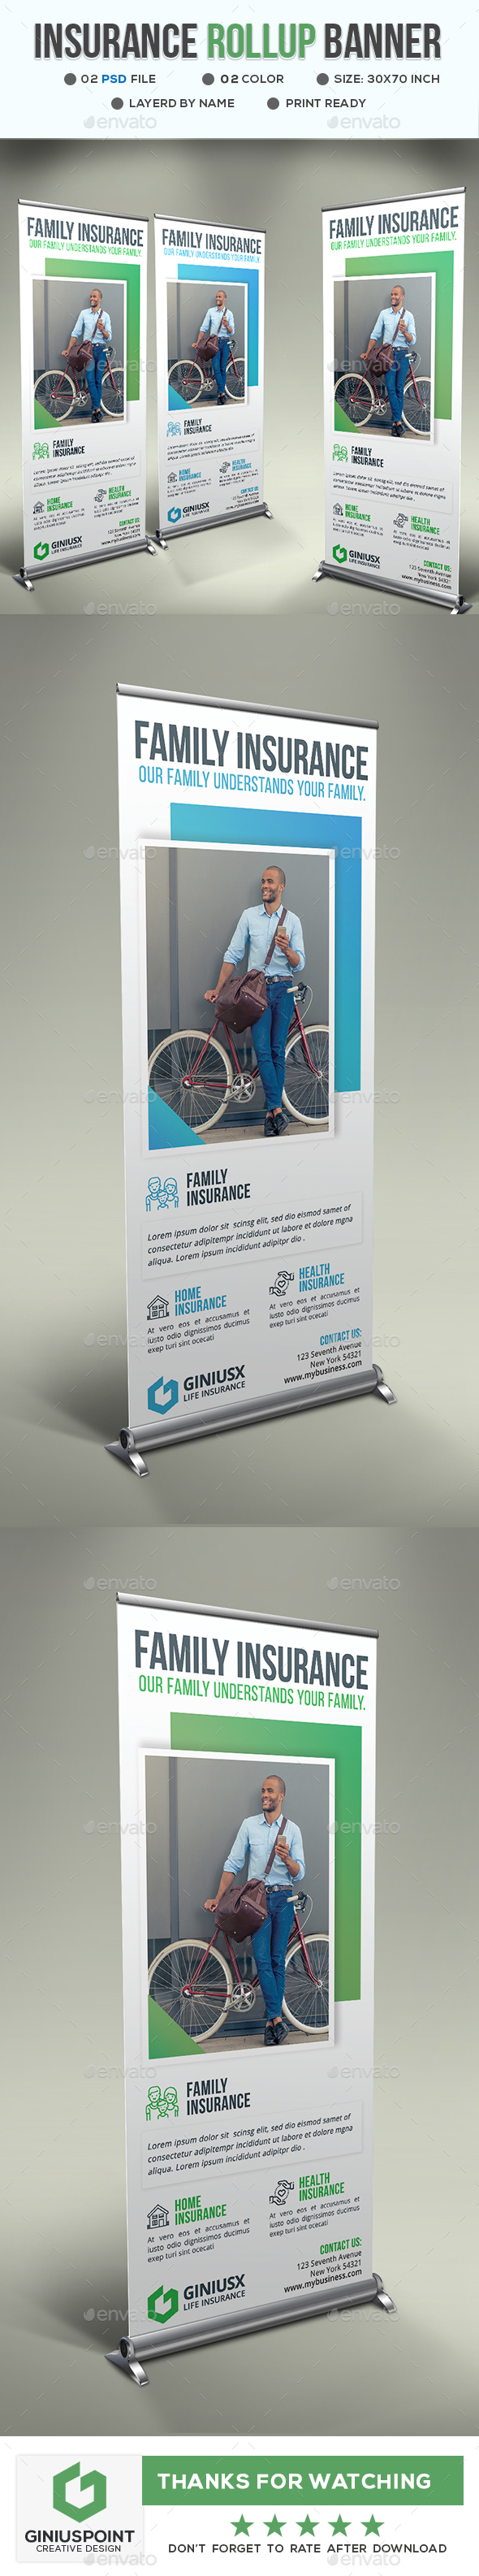 Insurance Roll-Up Banner